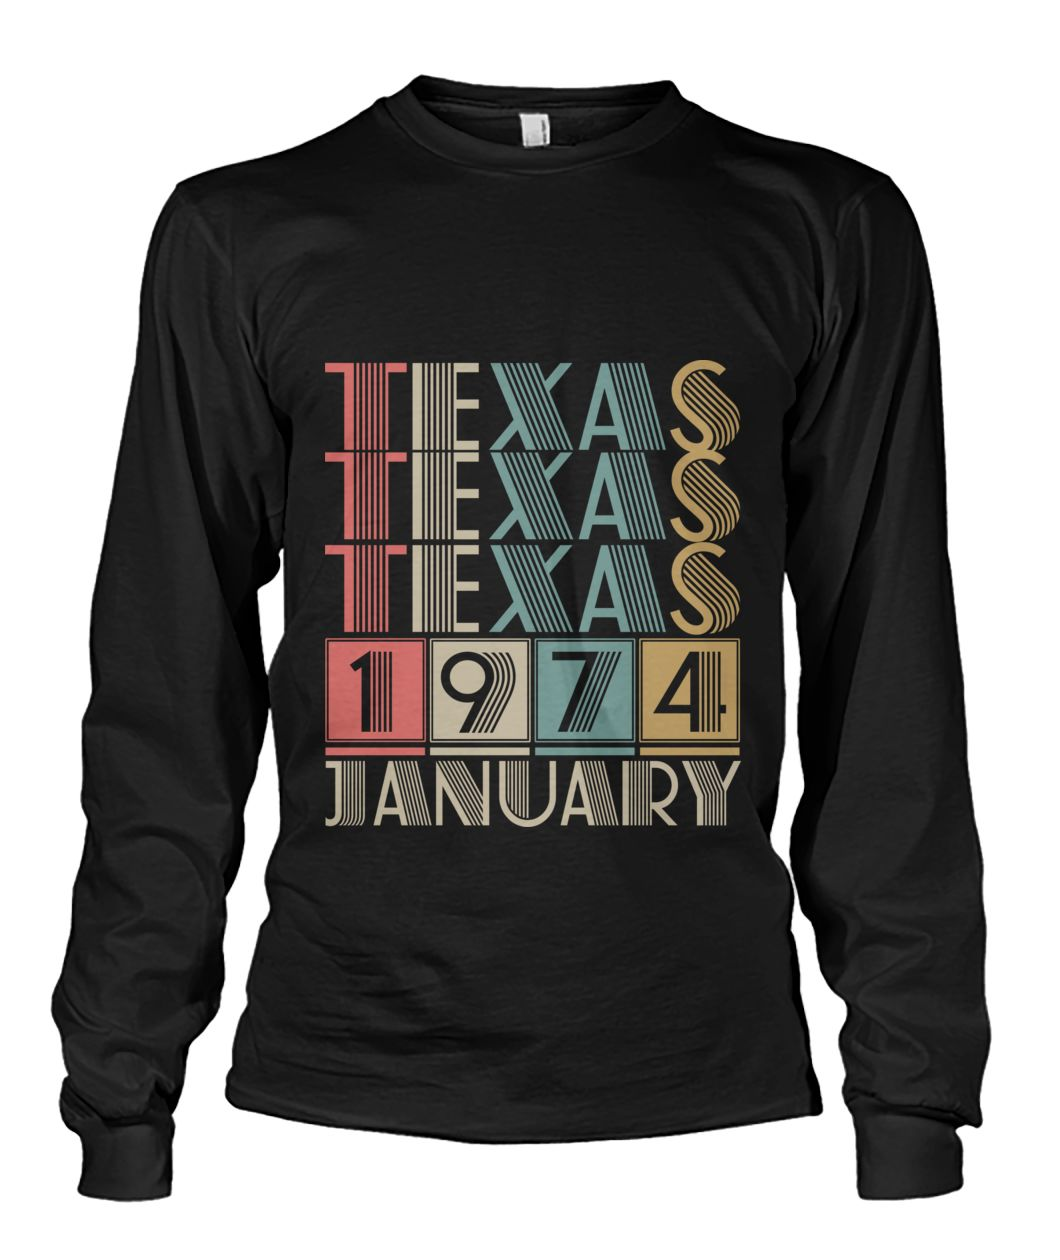 Born in Texas in January 1974 t shirt-Short Sleeves - TEEHOT.COM